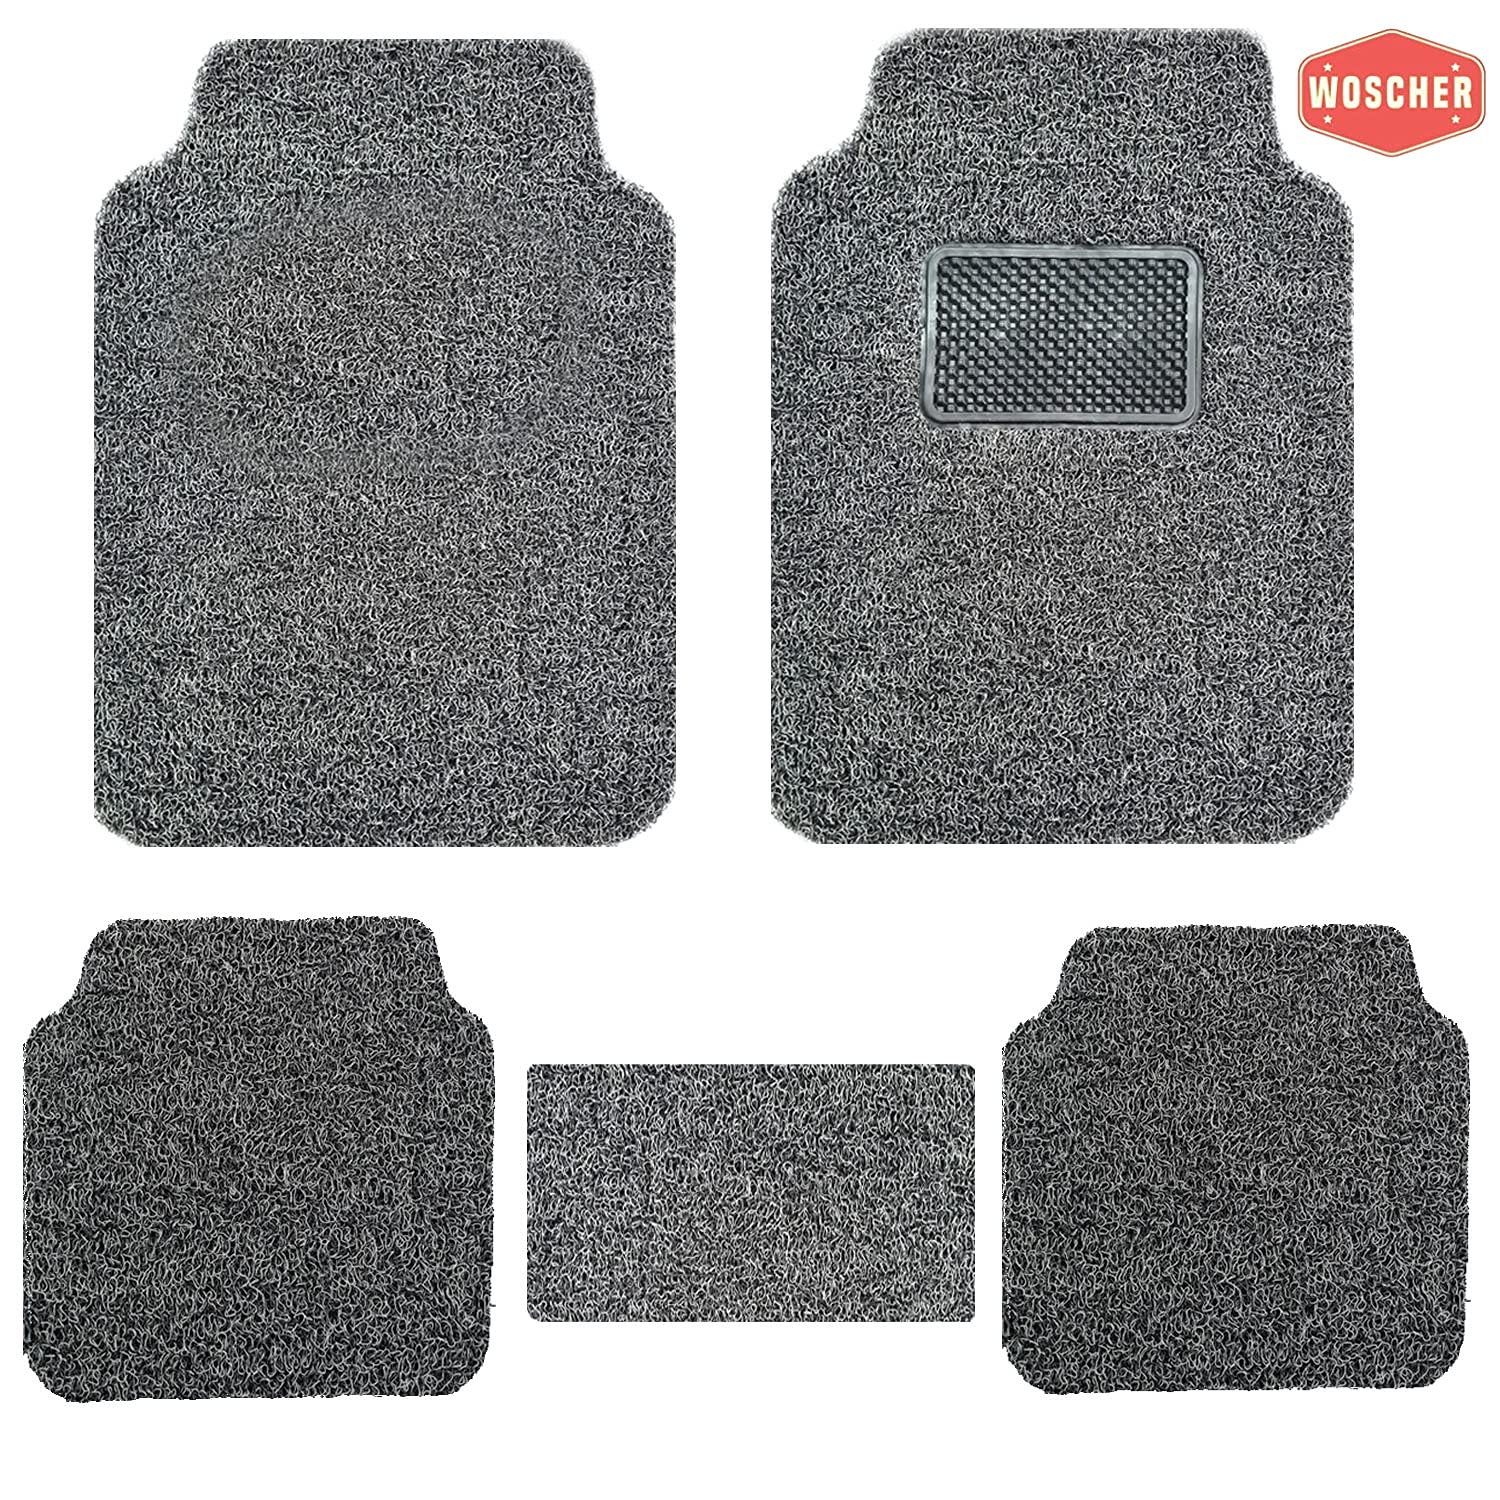 woscher-6280-anti-slip-curly-grass-car-mat-universal-for-all-cars-set-of-5-grey-black